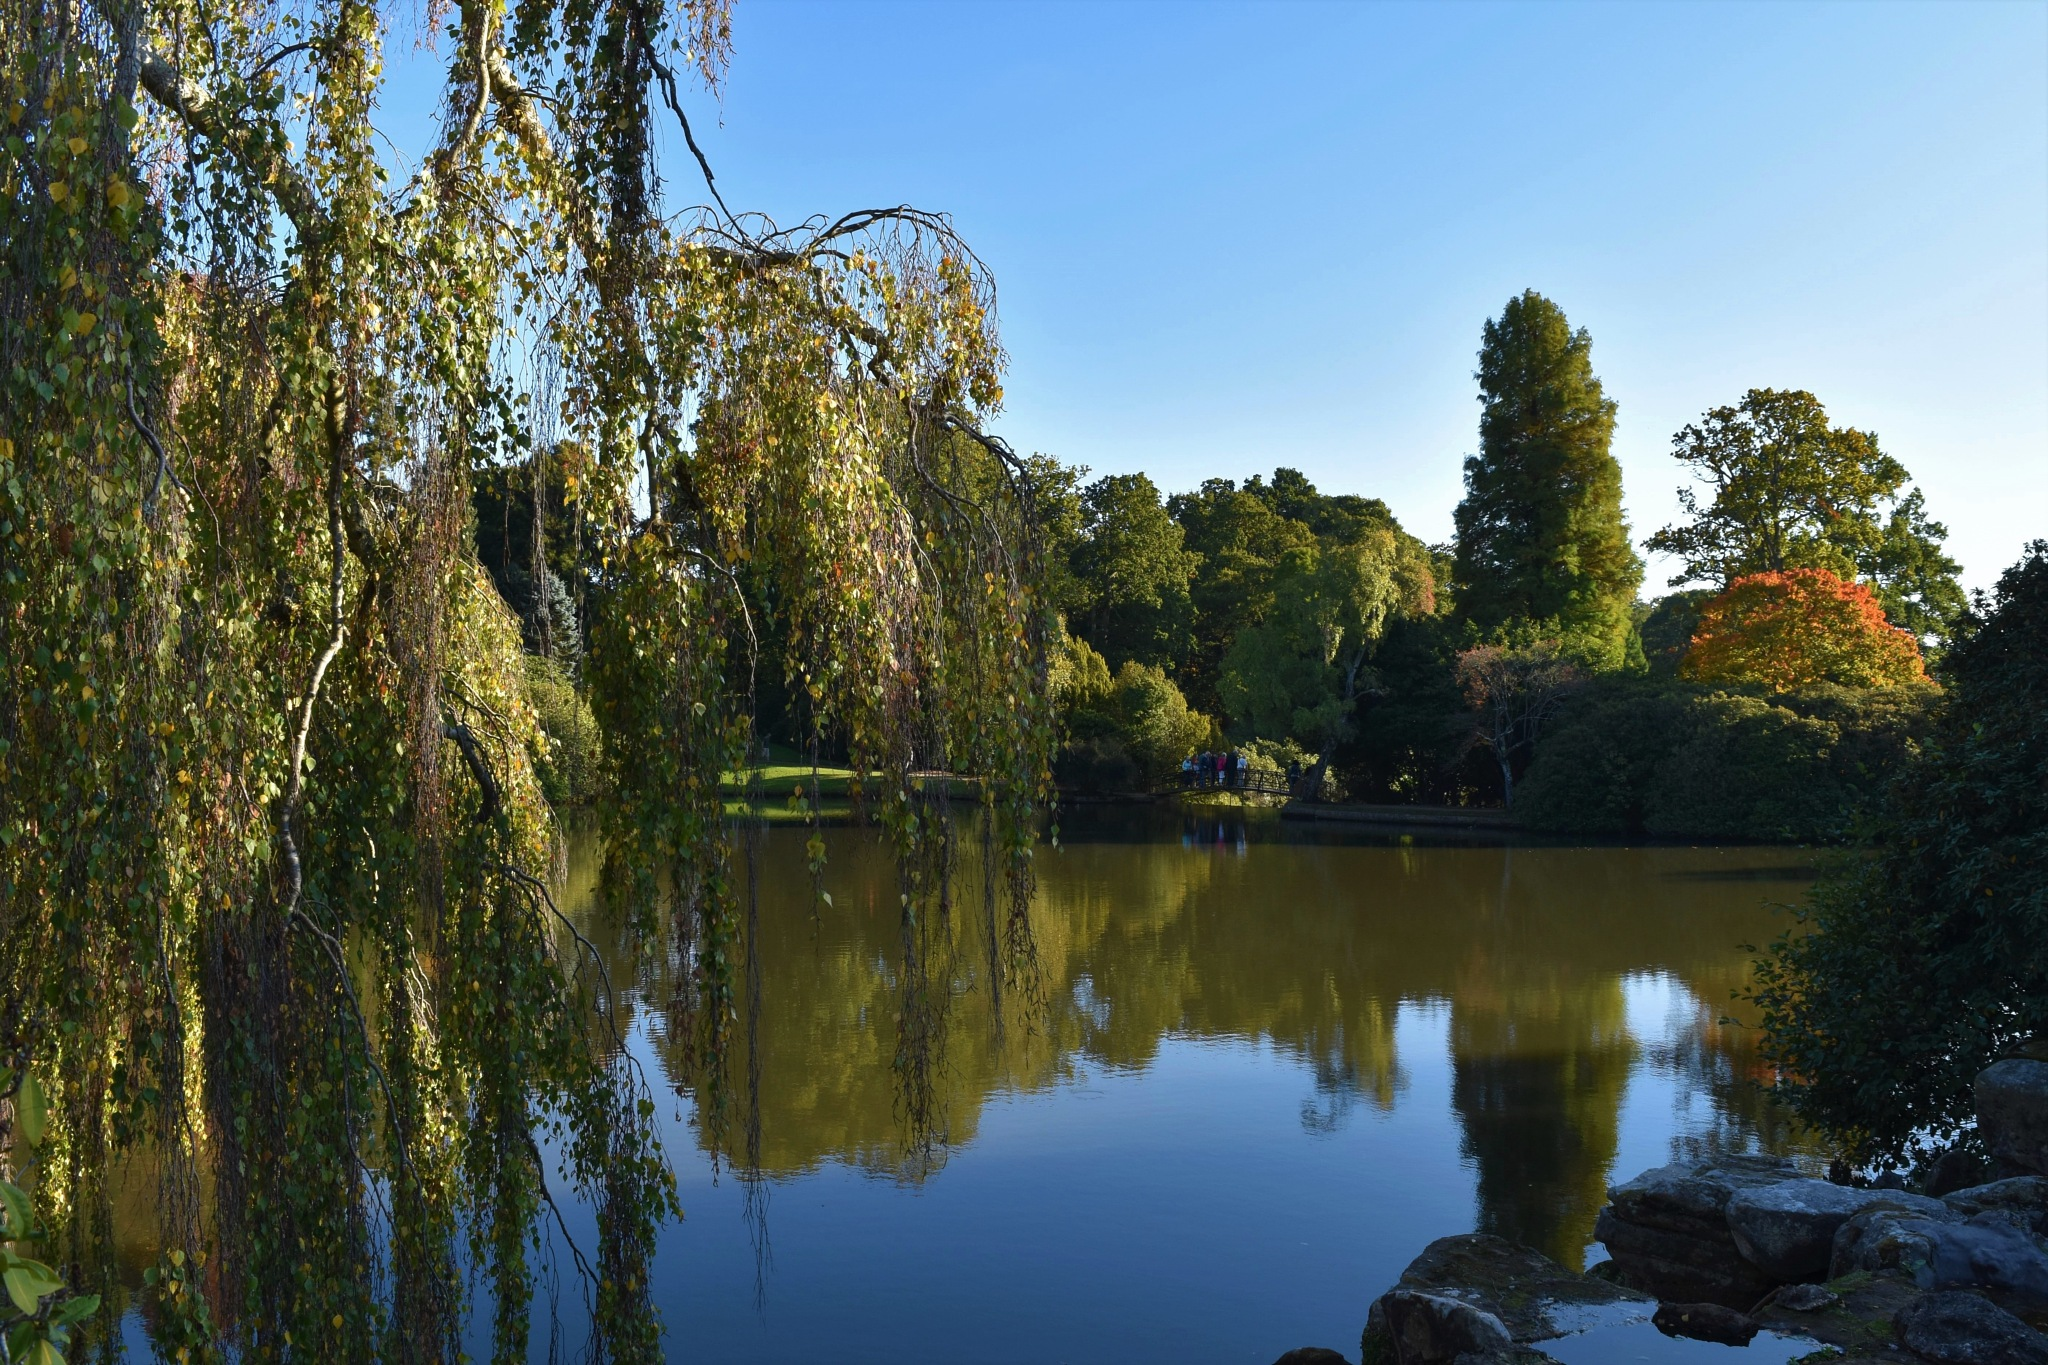 Willow and pond by Andrew Chalmers